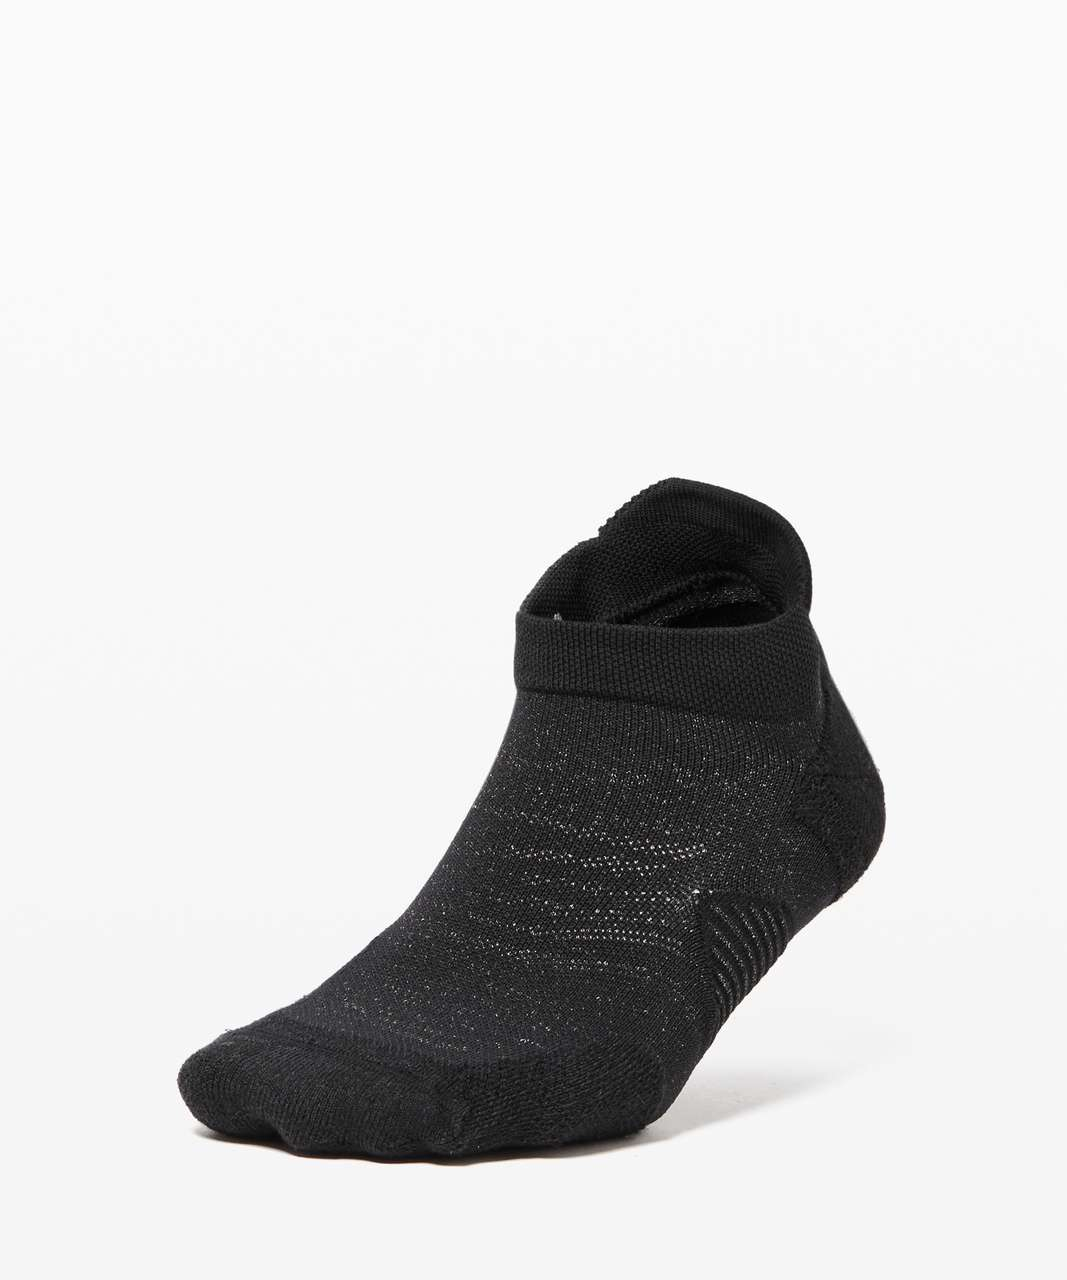 Lululemon Speed Sock *Silver - Black